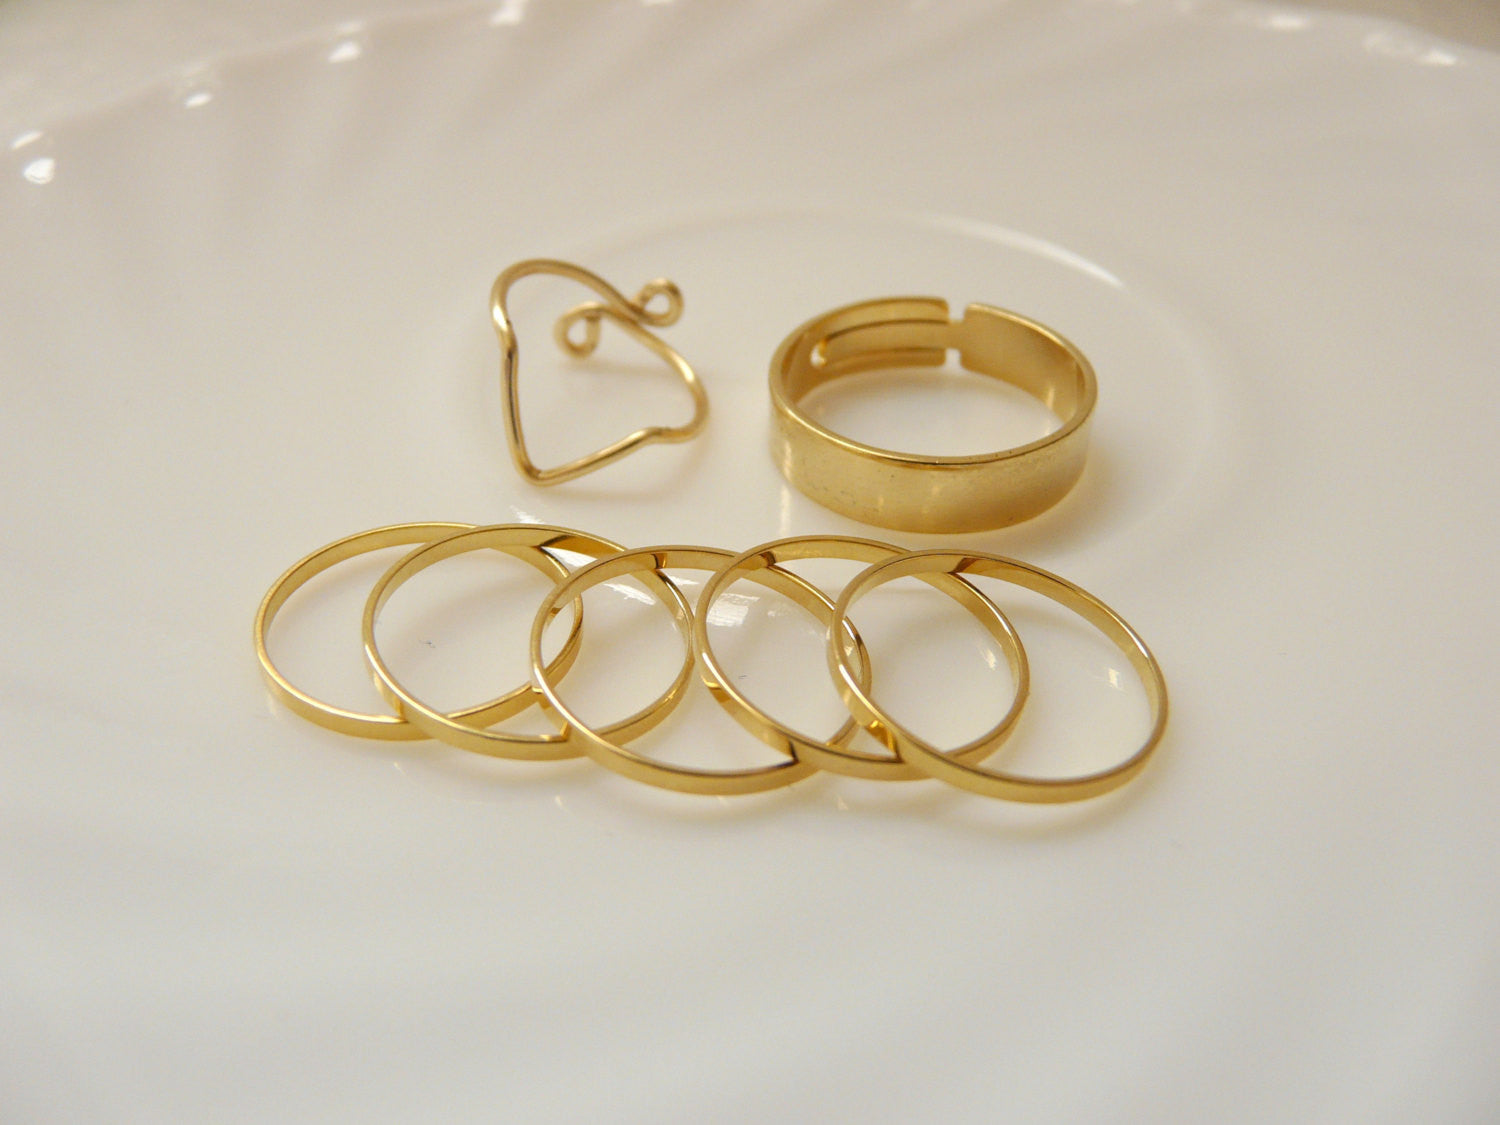 Set of 7 Gold knuckle rings - OpaLandJewelry